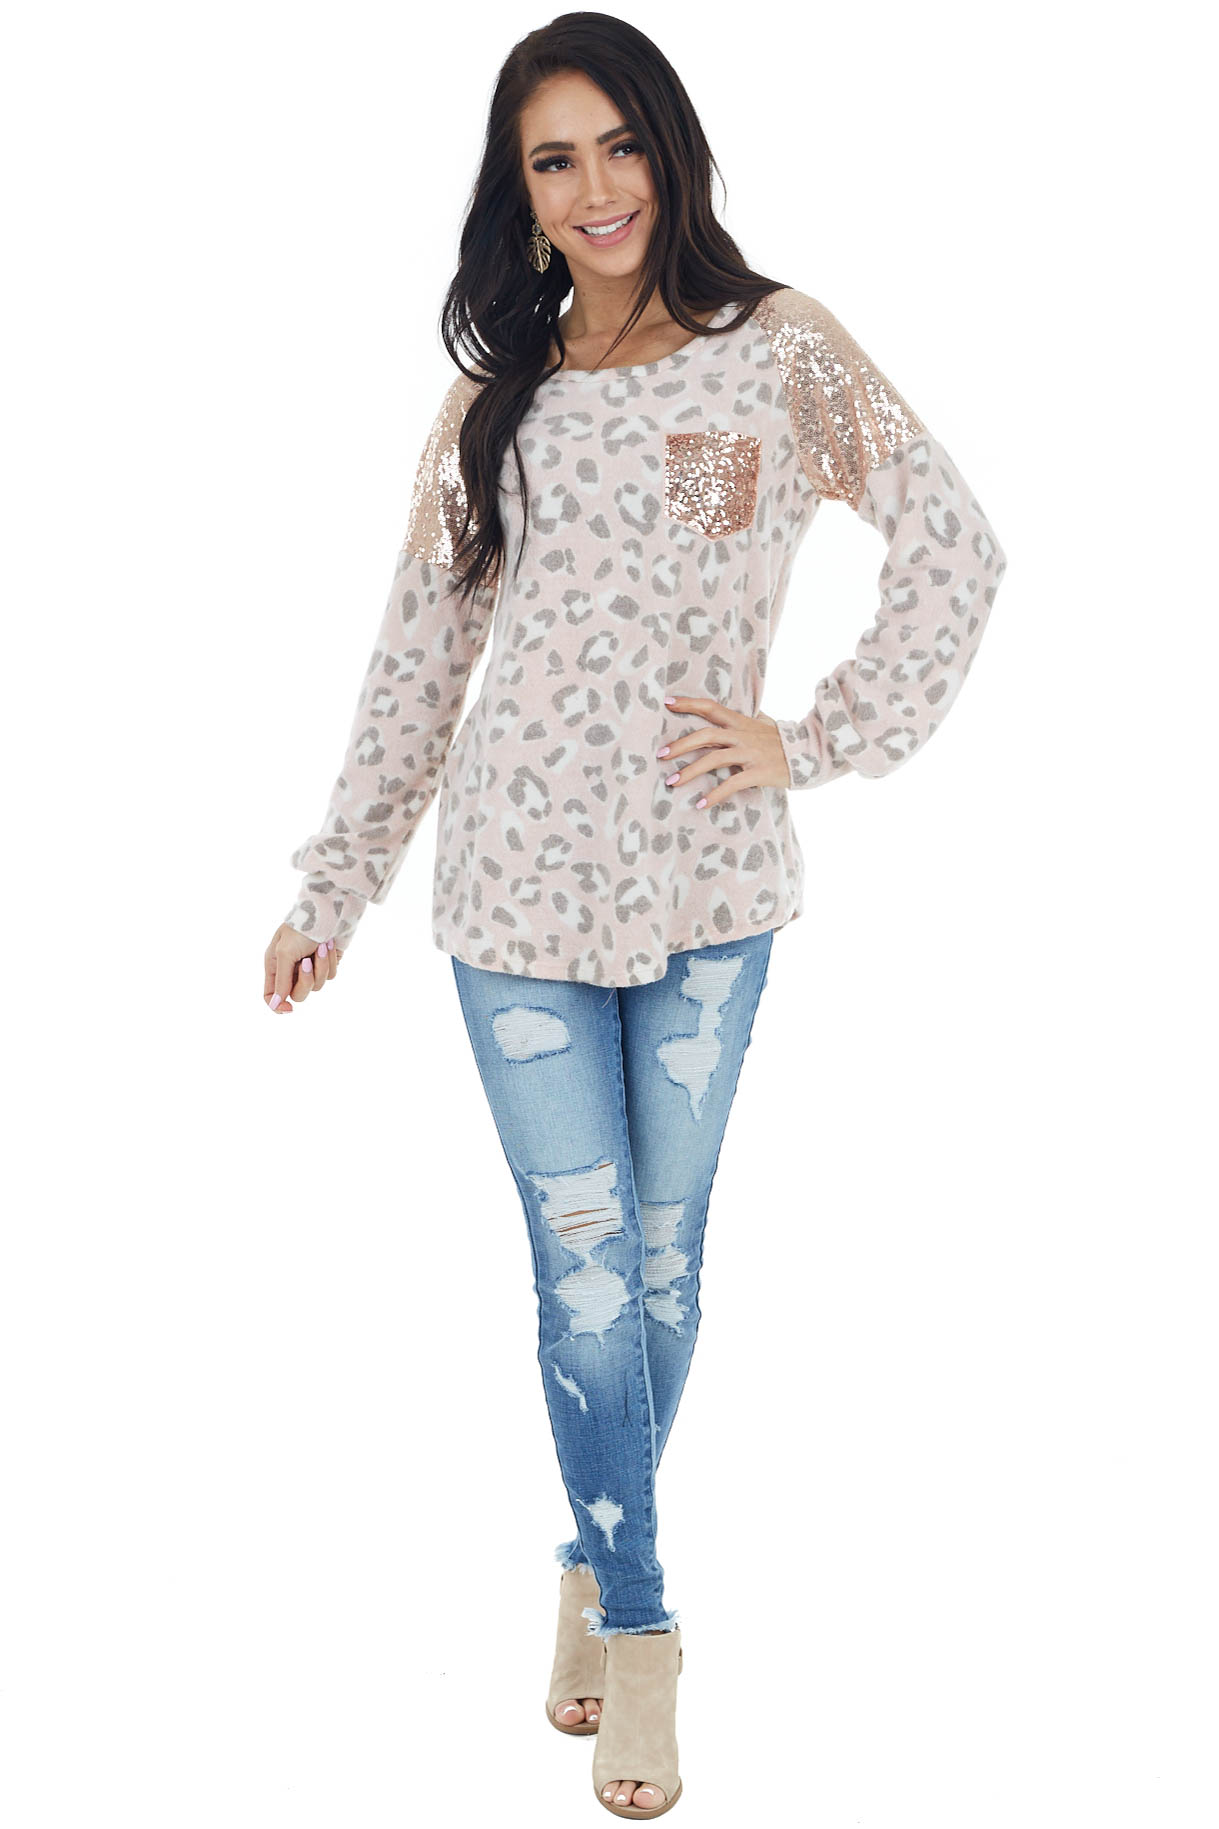 Blush Leopard Print Long Sleeve Knit Top with Sequin Detail